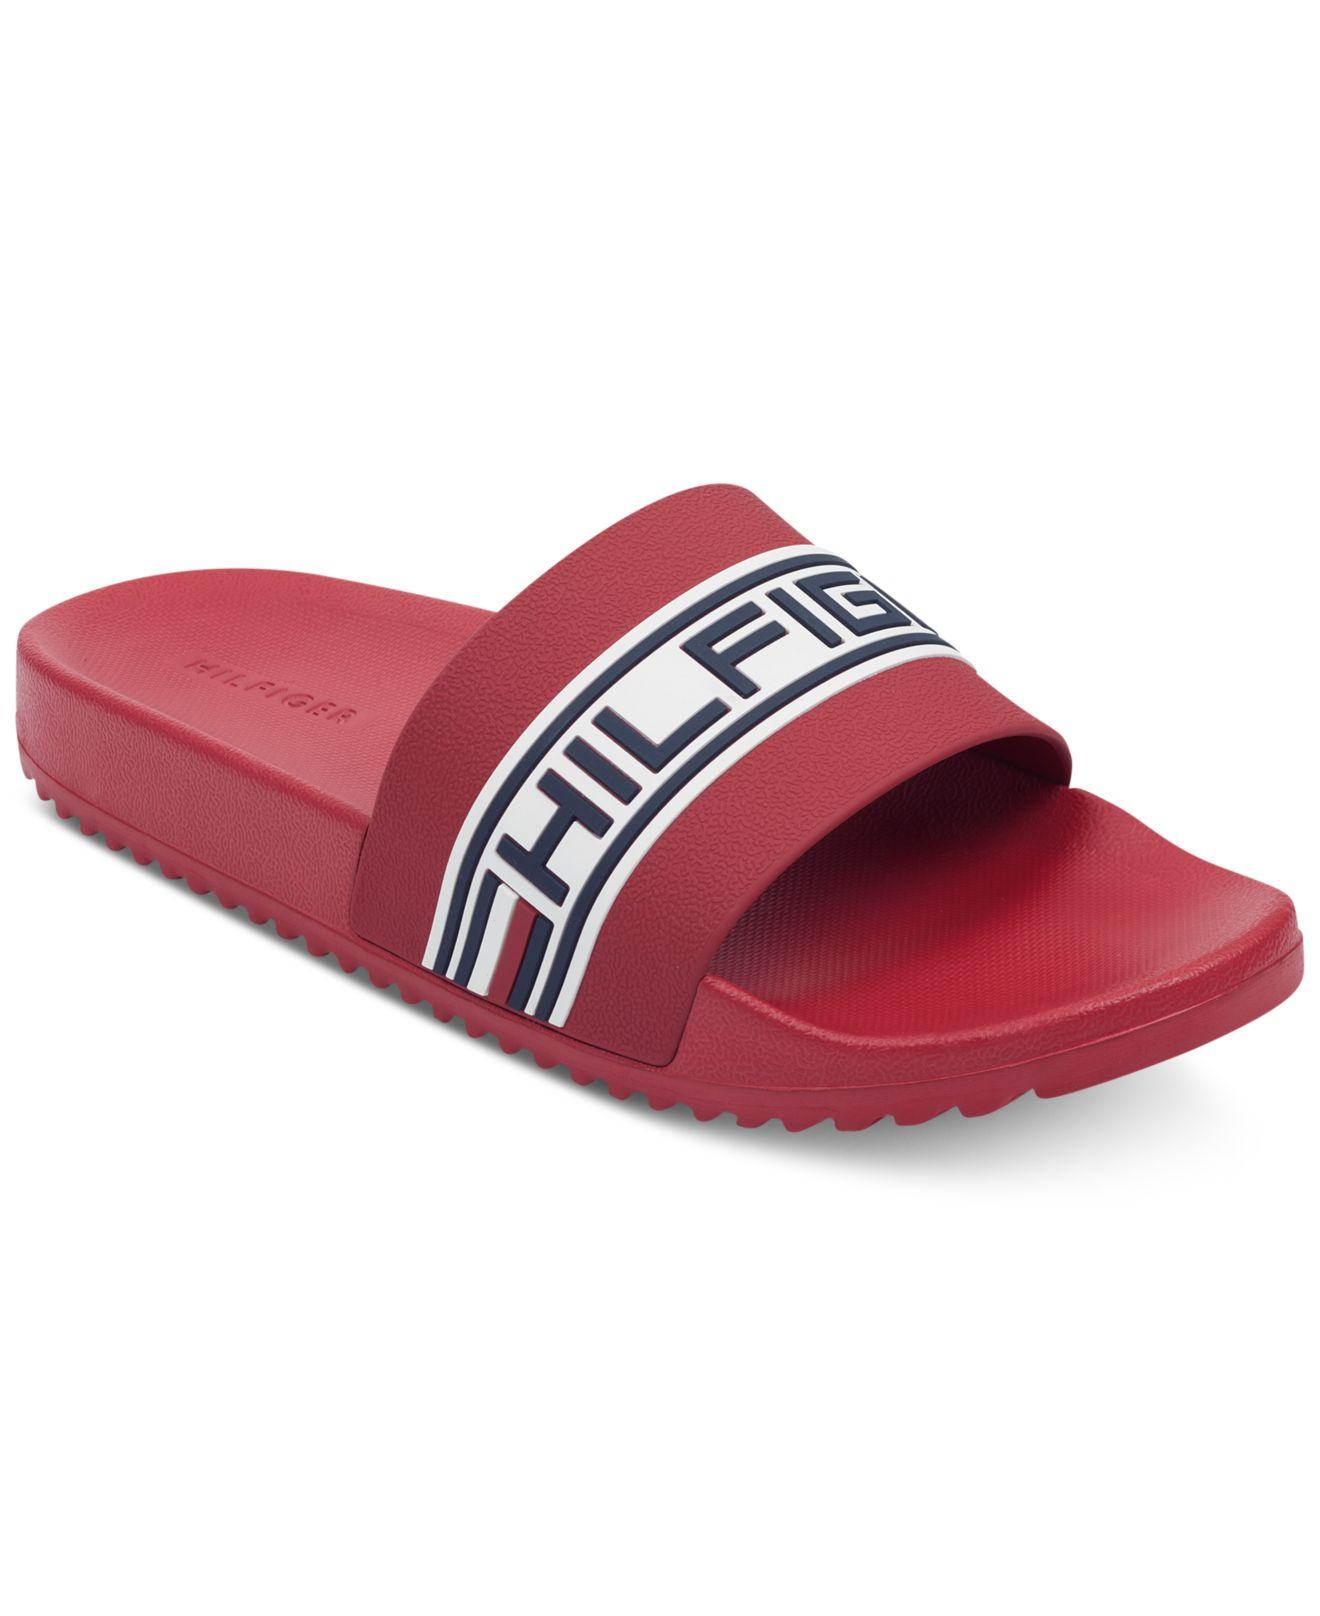 8aa85421f Lyst - Tommy Hilfiger Rustic Slide Sandals in Red for Men